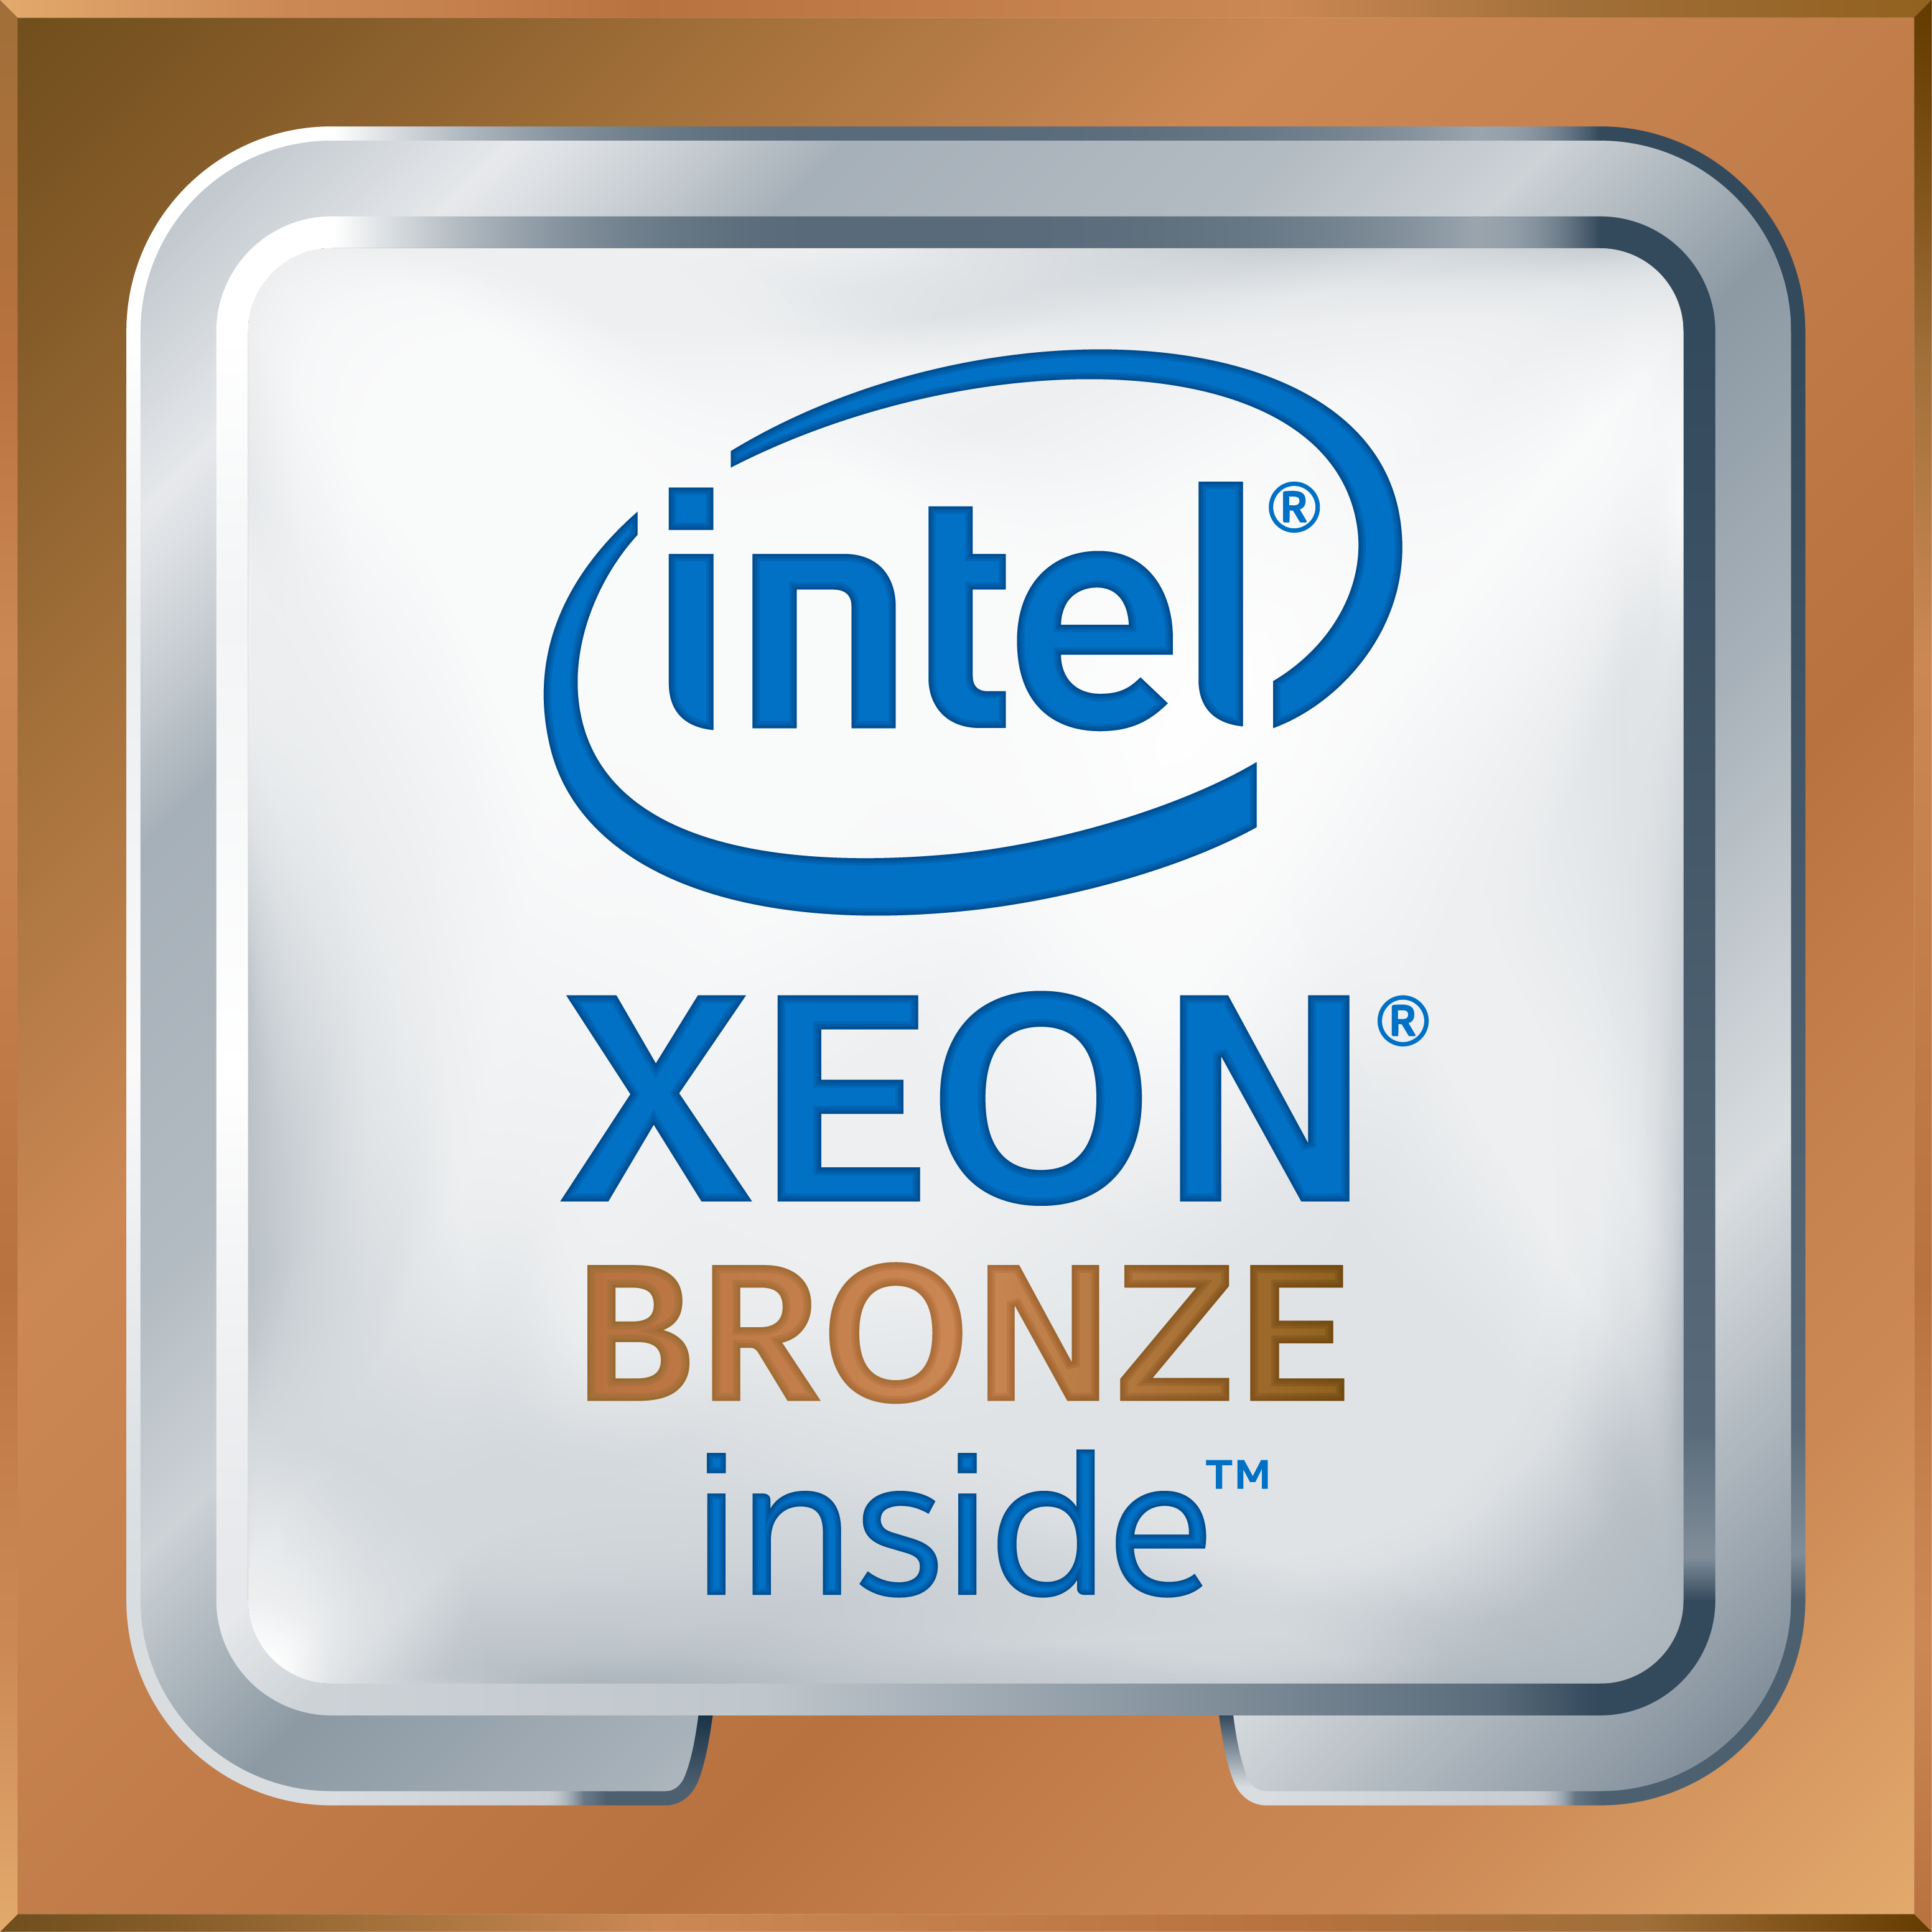 Intel Xeon Bronze Logo High Res Transparent 2017